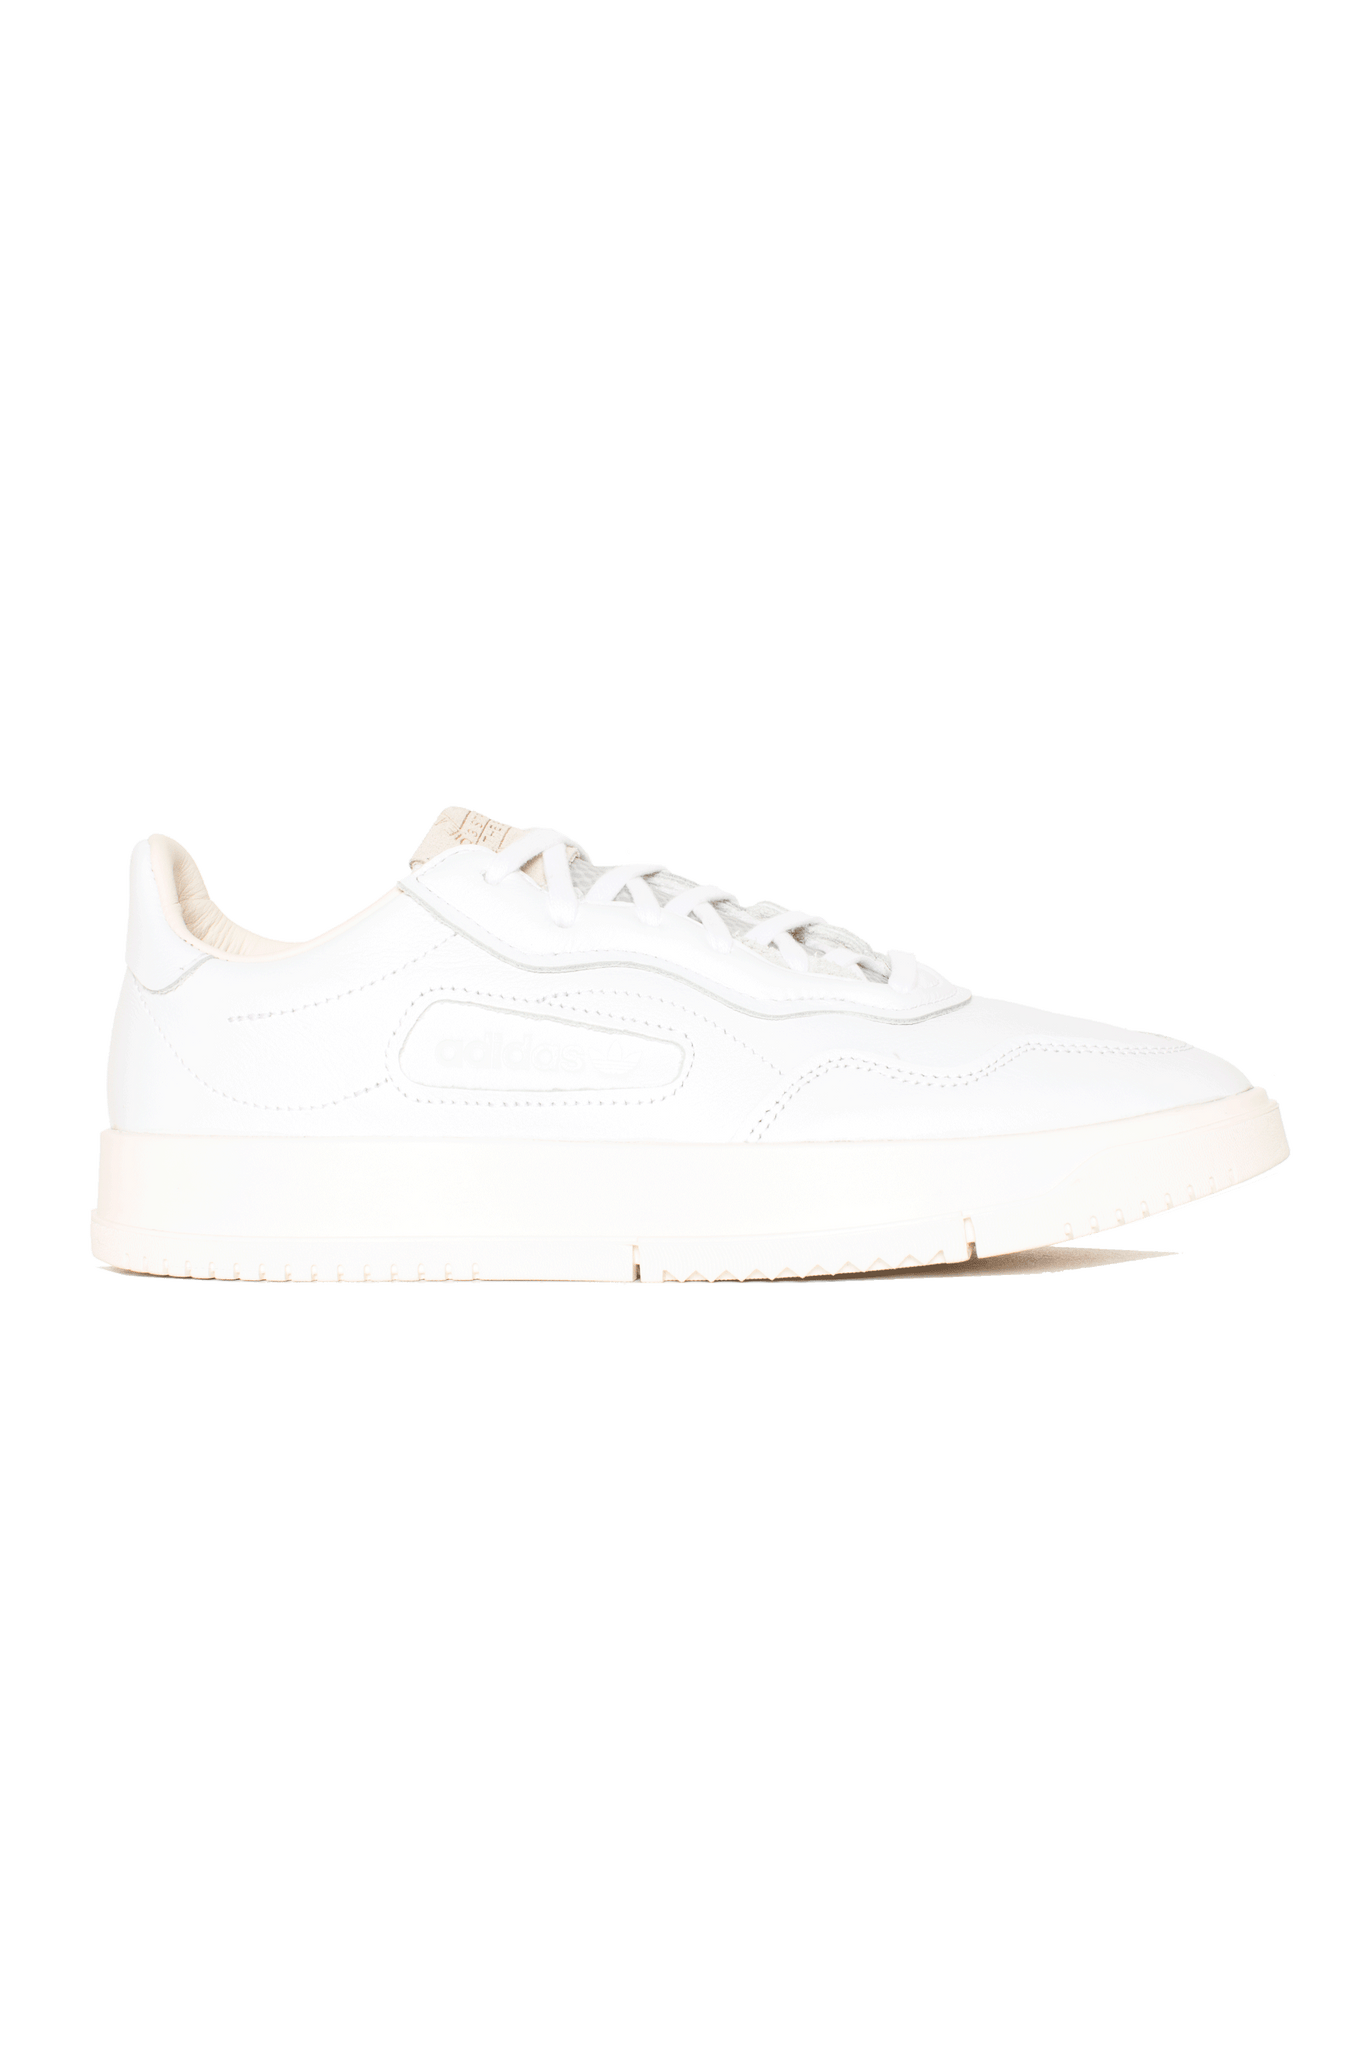 Adidas Originals Sneakers SC Premiere White BD7583#000#C0006#4,5 - One Block Down